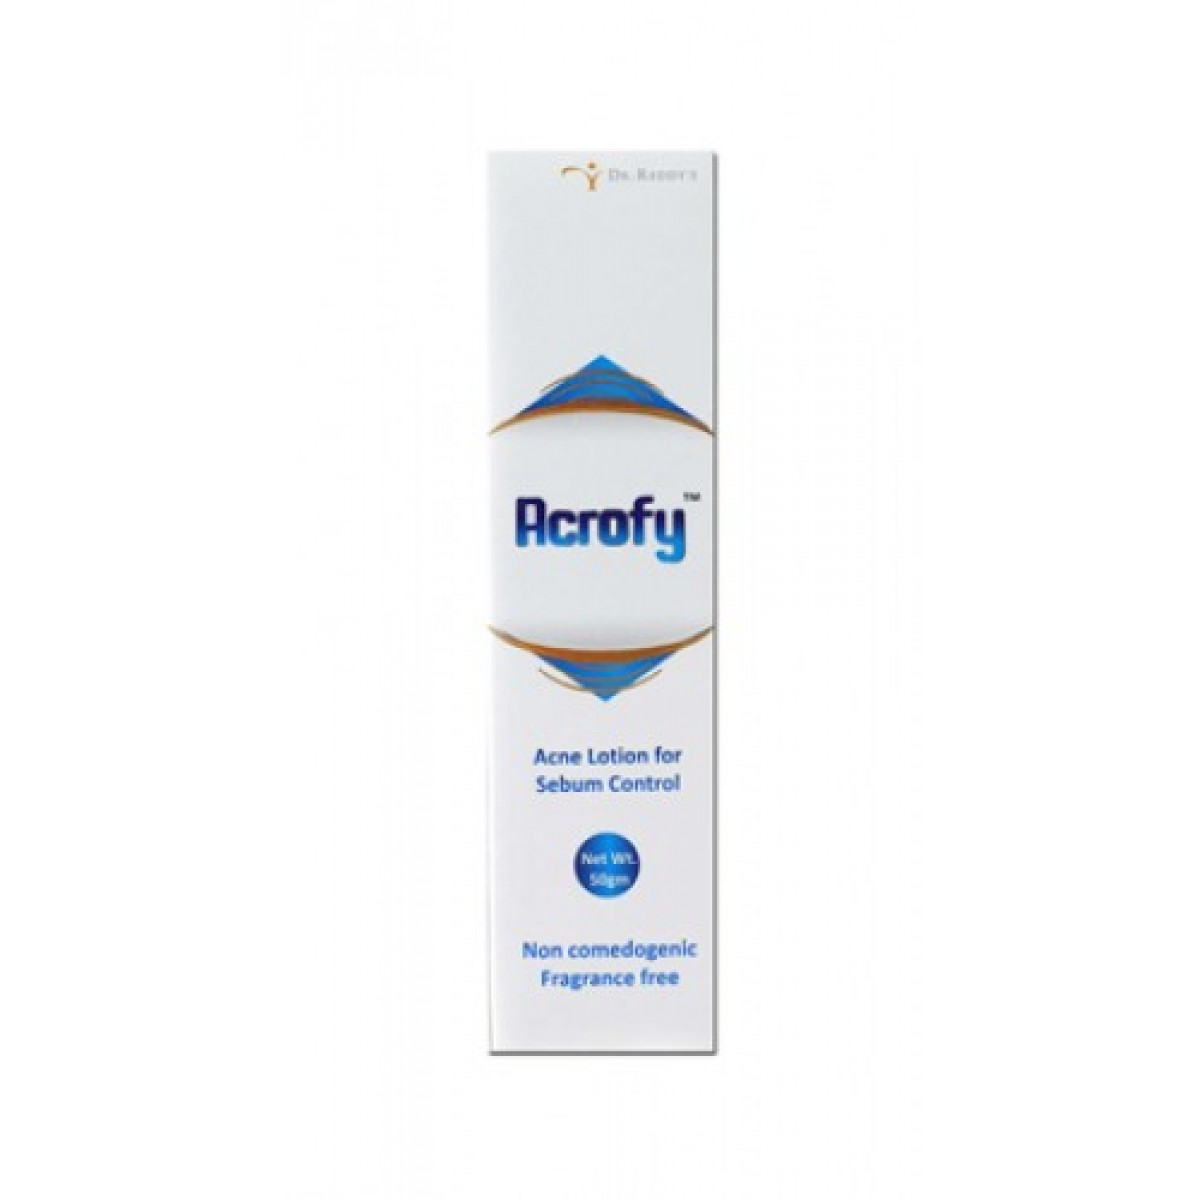 Acrofy Acne Lotion for Sebum Control